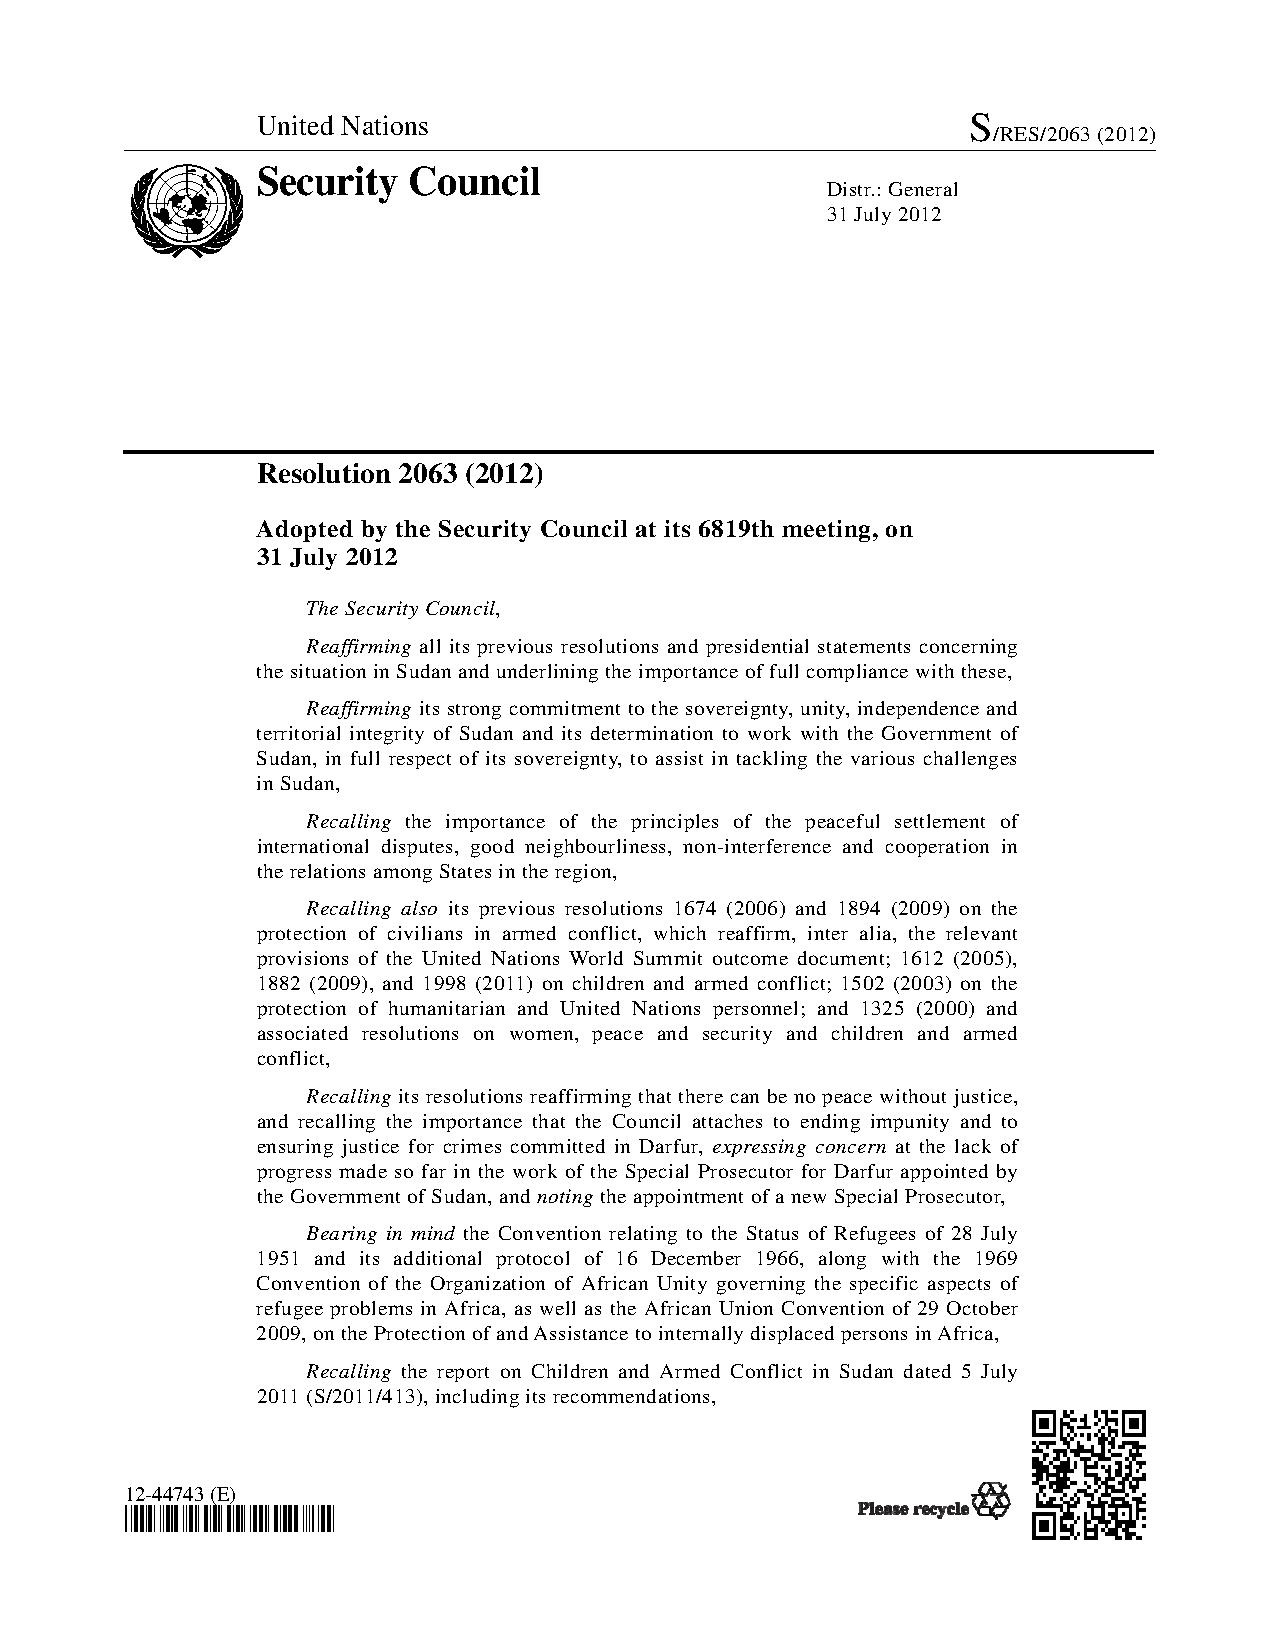 un security council resolution summary 2014 All nine resolutions were unanimously adopted by the security council and all but resolution 2087 (january 2013) contain references to acting under chapter vii, article 41 of the united nations charter.